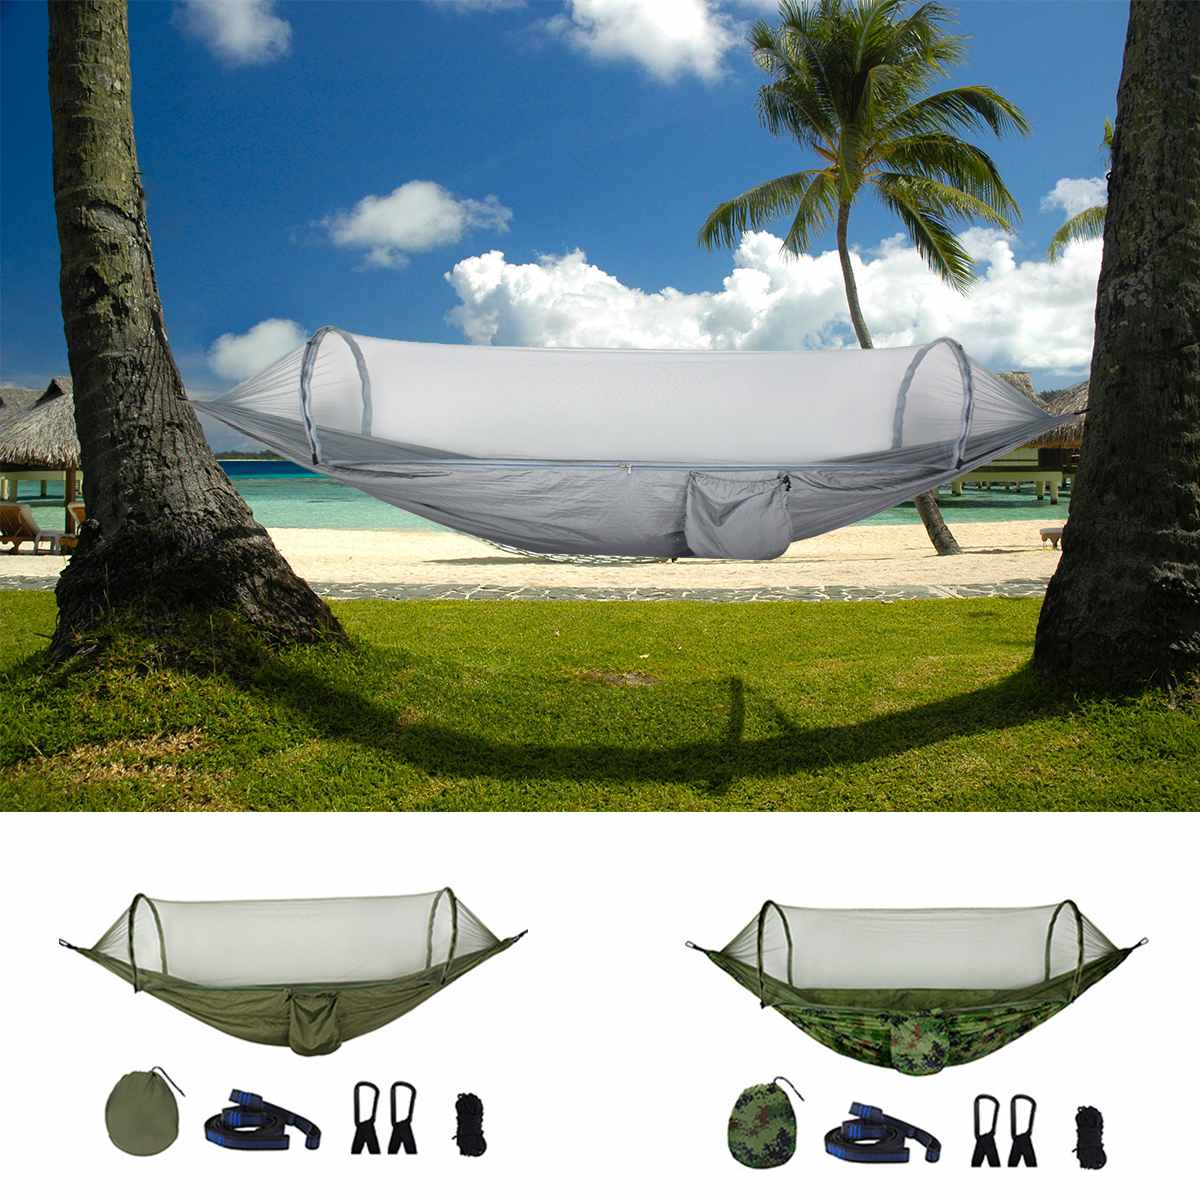 1-2 Person Portable Outdoor Hammock with Mosquito Net Buckle Auto Jungle Parachute Hammock Camping Sleeping Swing Bed Hunting1-2 Person Portable Outdoor Hammock with Mosquito Net Buckle Auto Jungle Parachute Hammock Camping Sleeping Swing Bed Hunting